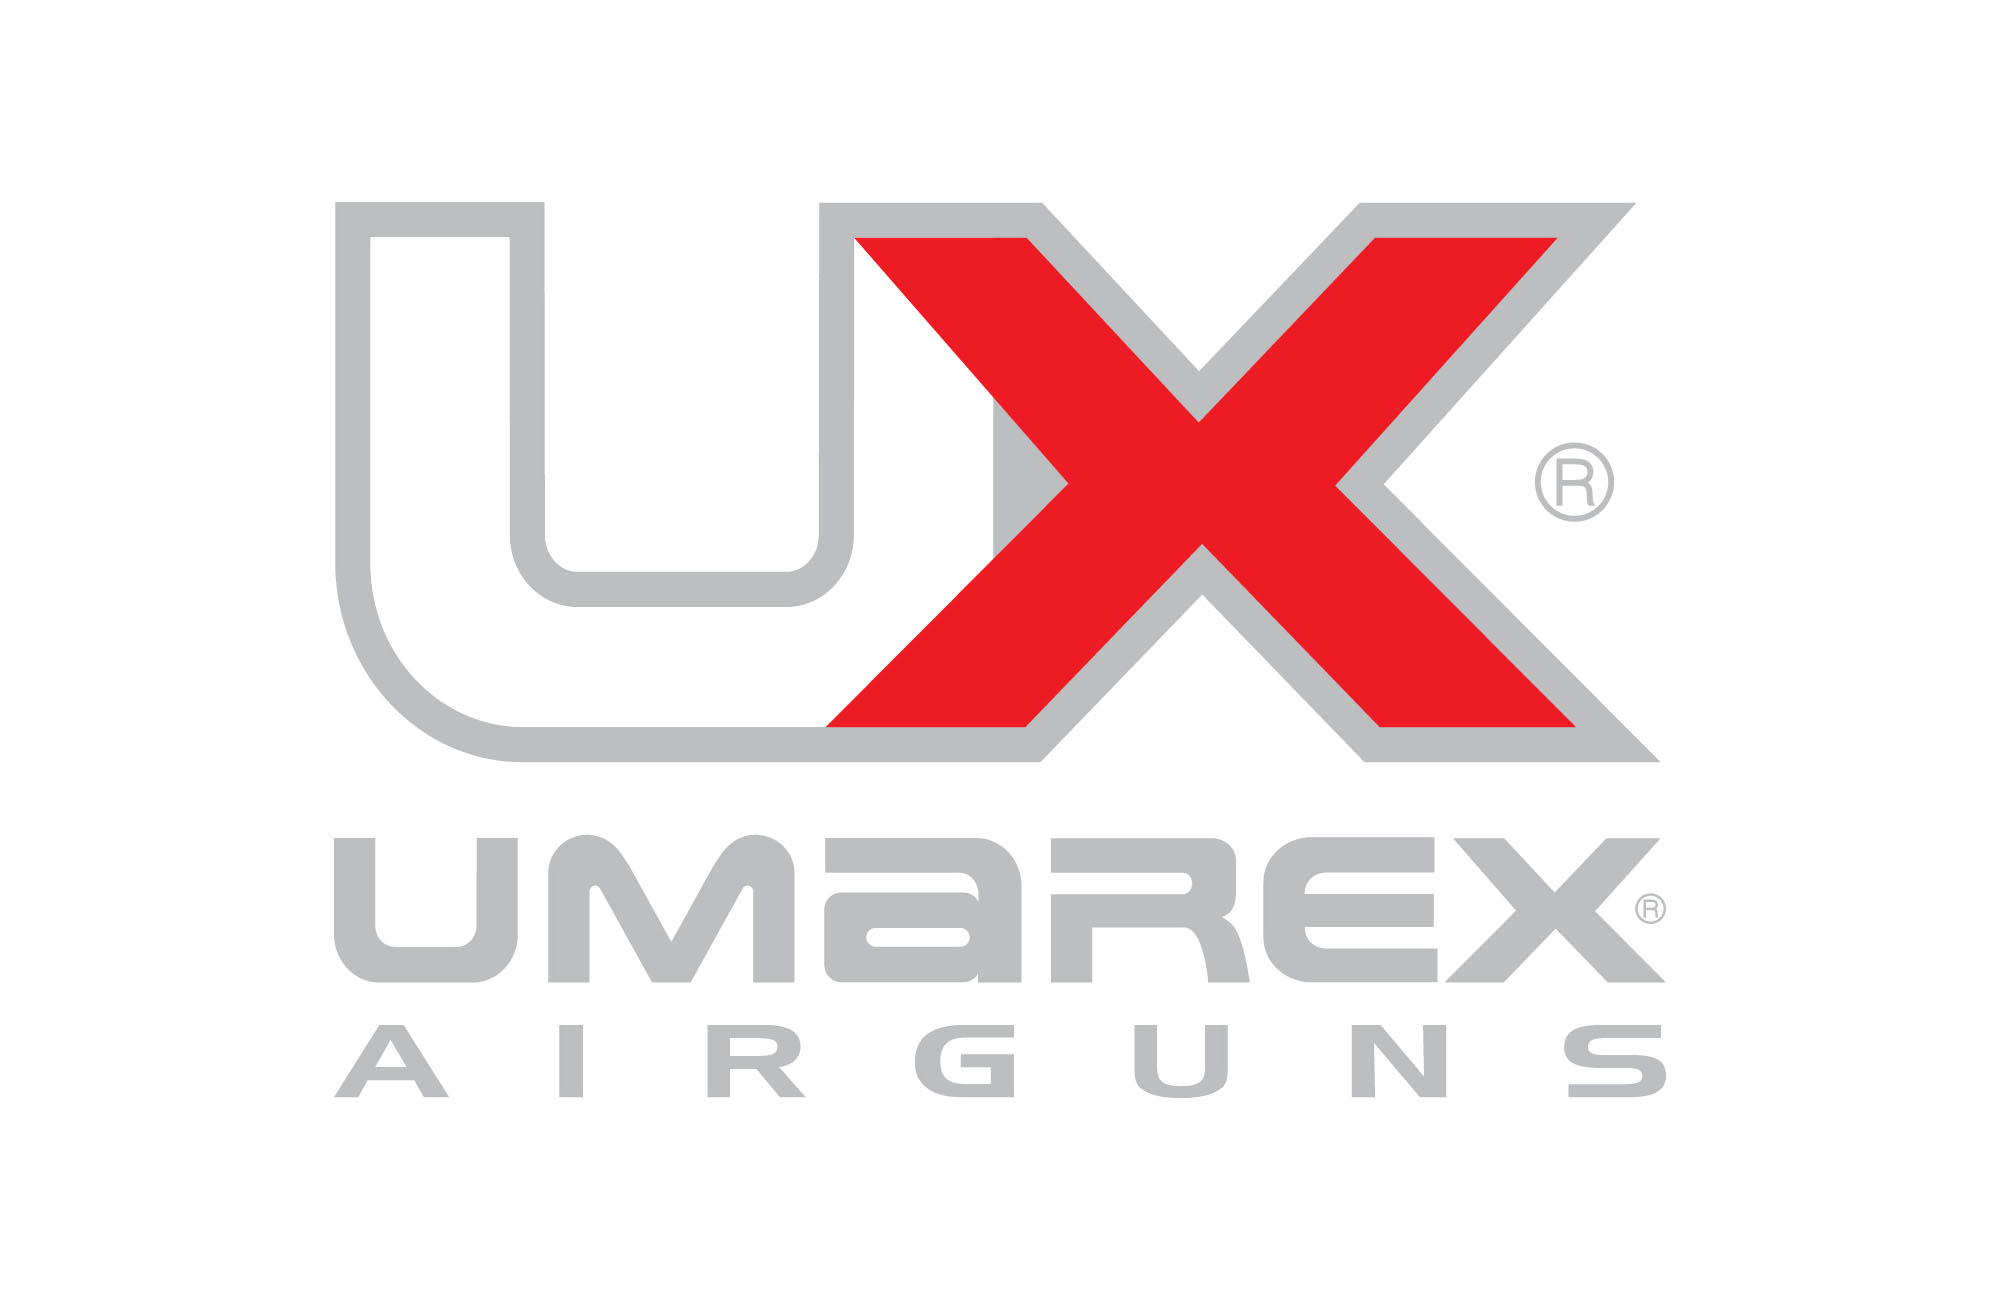 Umarex Airguns exhibiting at the Annual NRA Meeting and